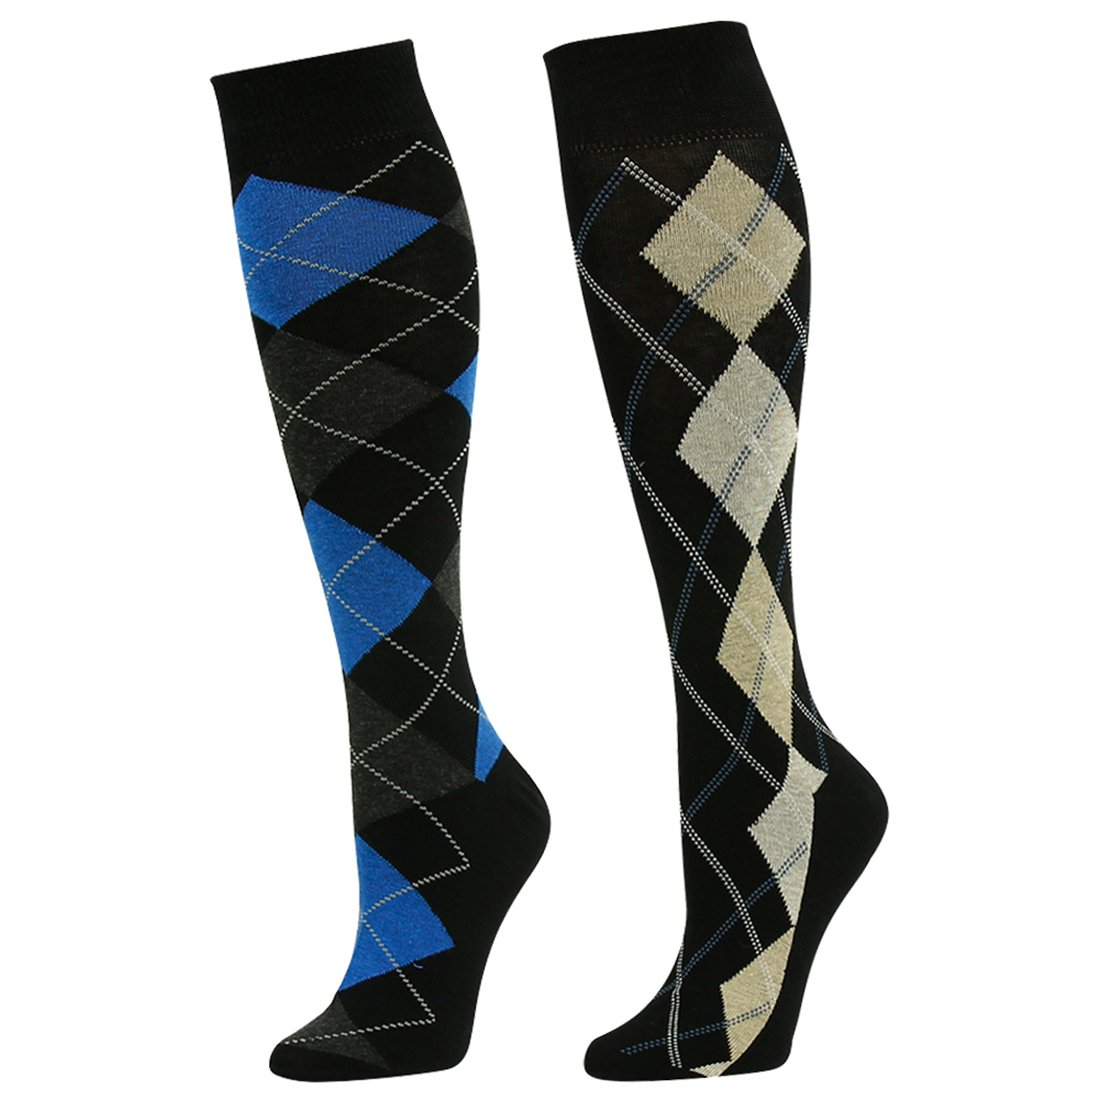 08dda981a73 SUTTOS Adult Youth Mens Womens Charged Cotton Flat Knit Blue Yellow Black  Argyle Striped Design Knee High Casual Dress Sock